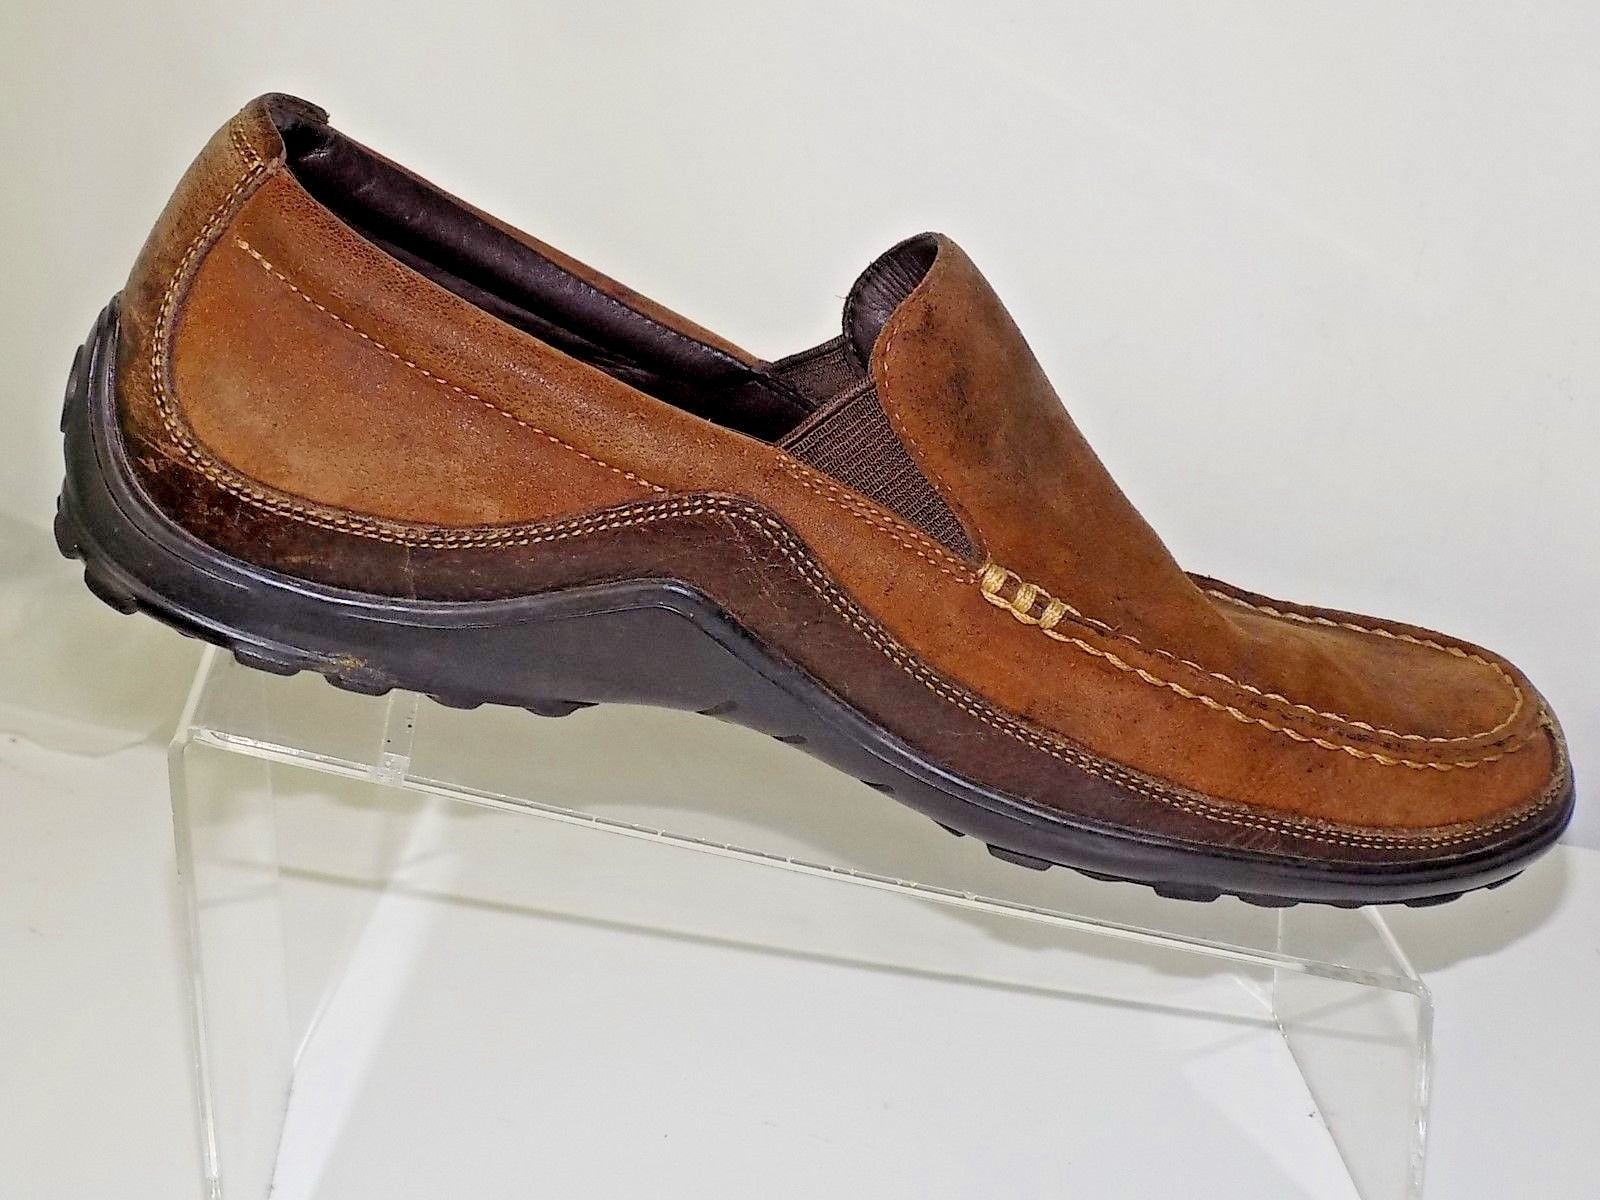 d370cad8e Cole Haan Leather Distressed Brown Driving and 50 similar items. S l1600